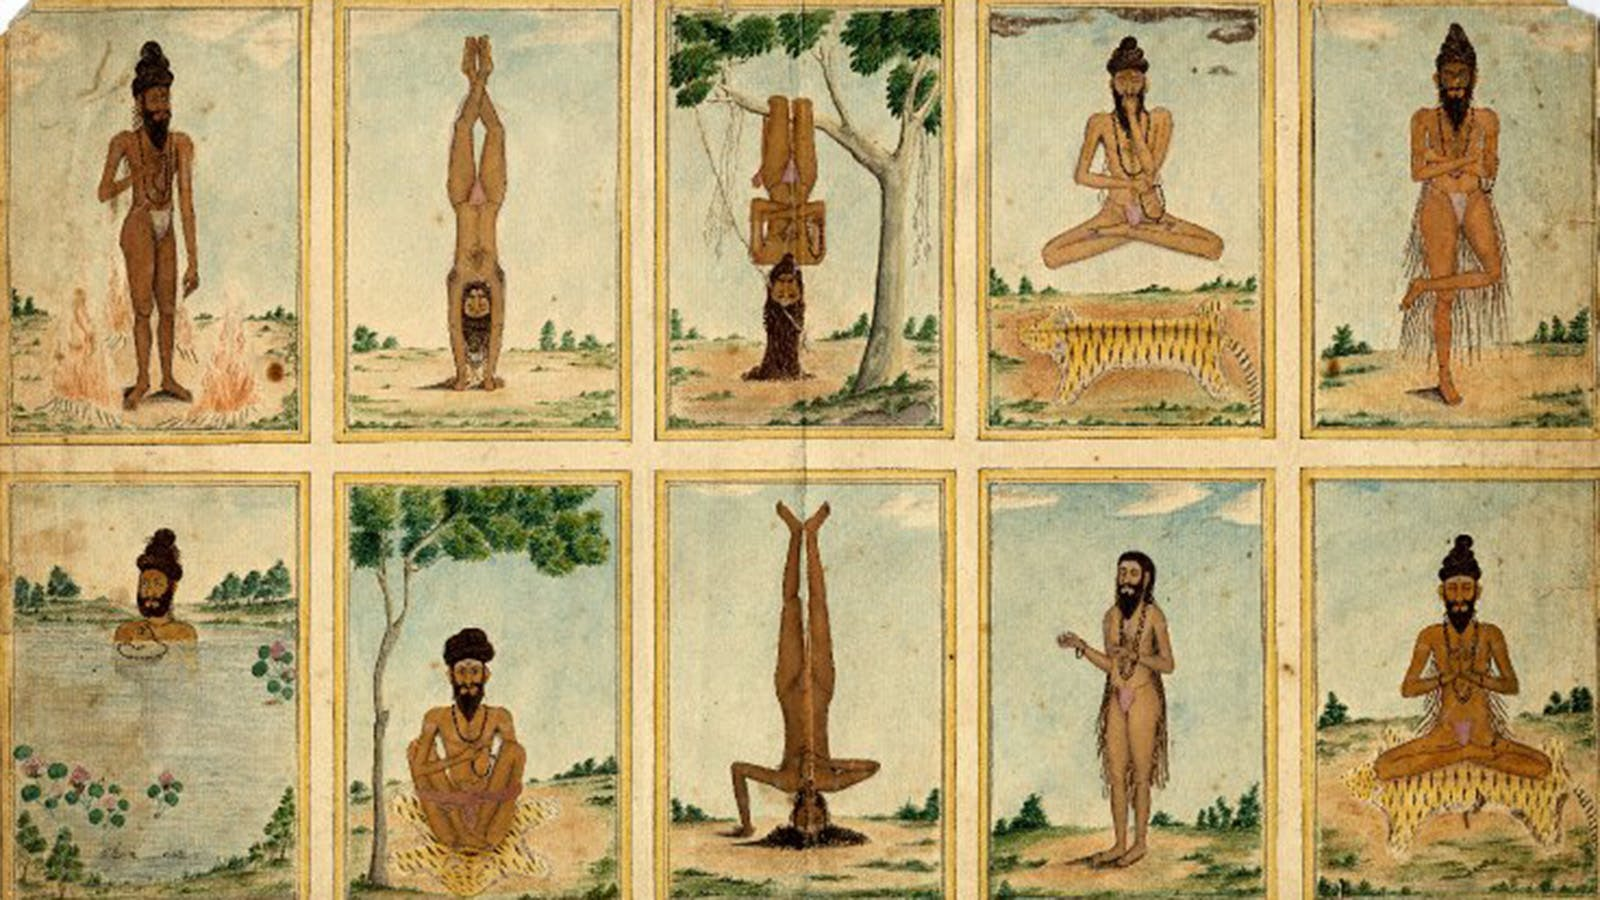 Sun salutations and yoga synthesis in India   Wellcome Collection